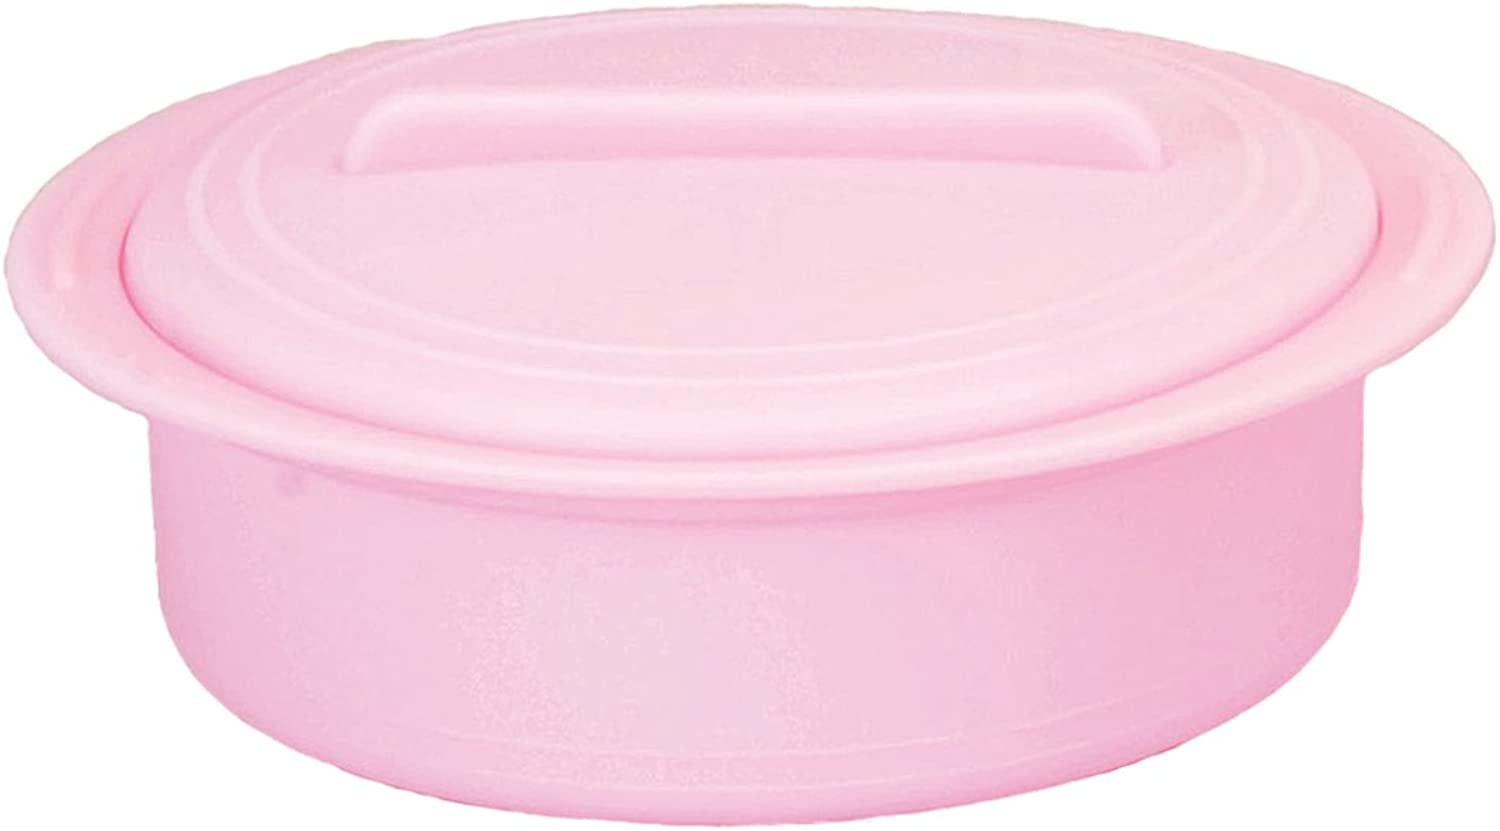 ViV silicon steamer casserole S Milky Pink 5969159691 (Japan import   The package and the manual are written in Japanese)